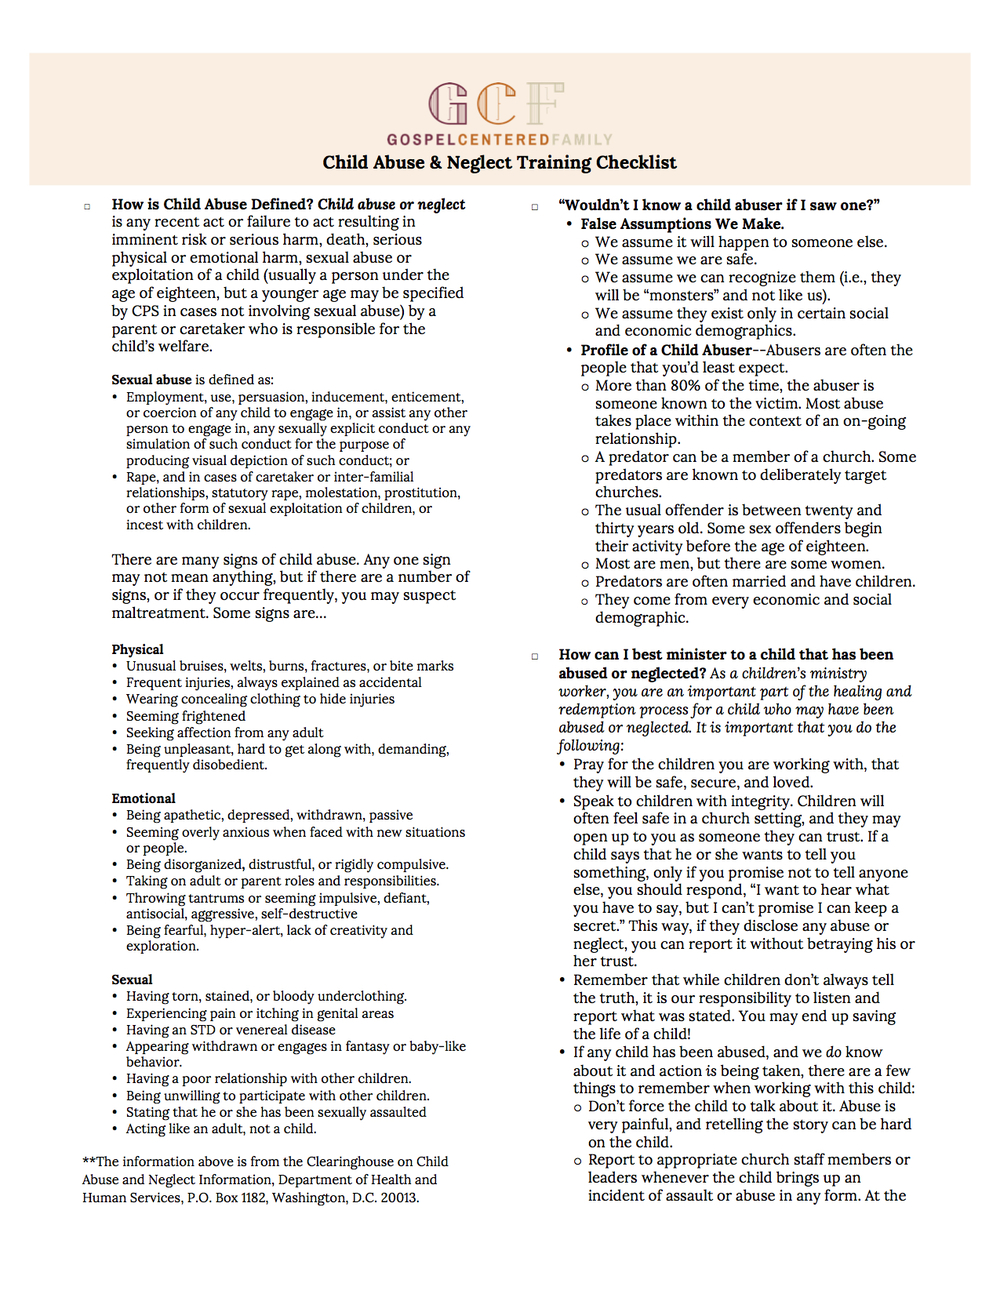 Child Abuse & Training Checklist By Jared Kennedy